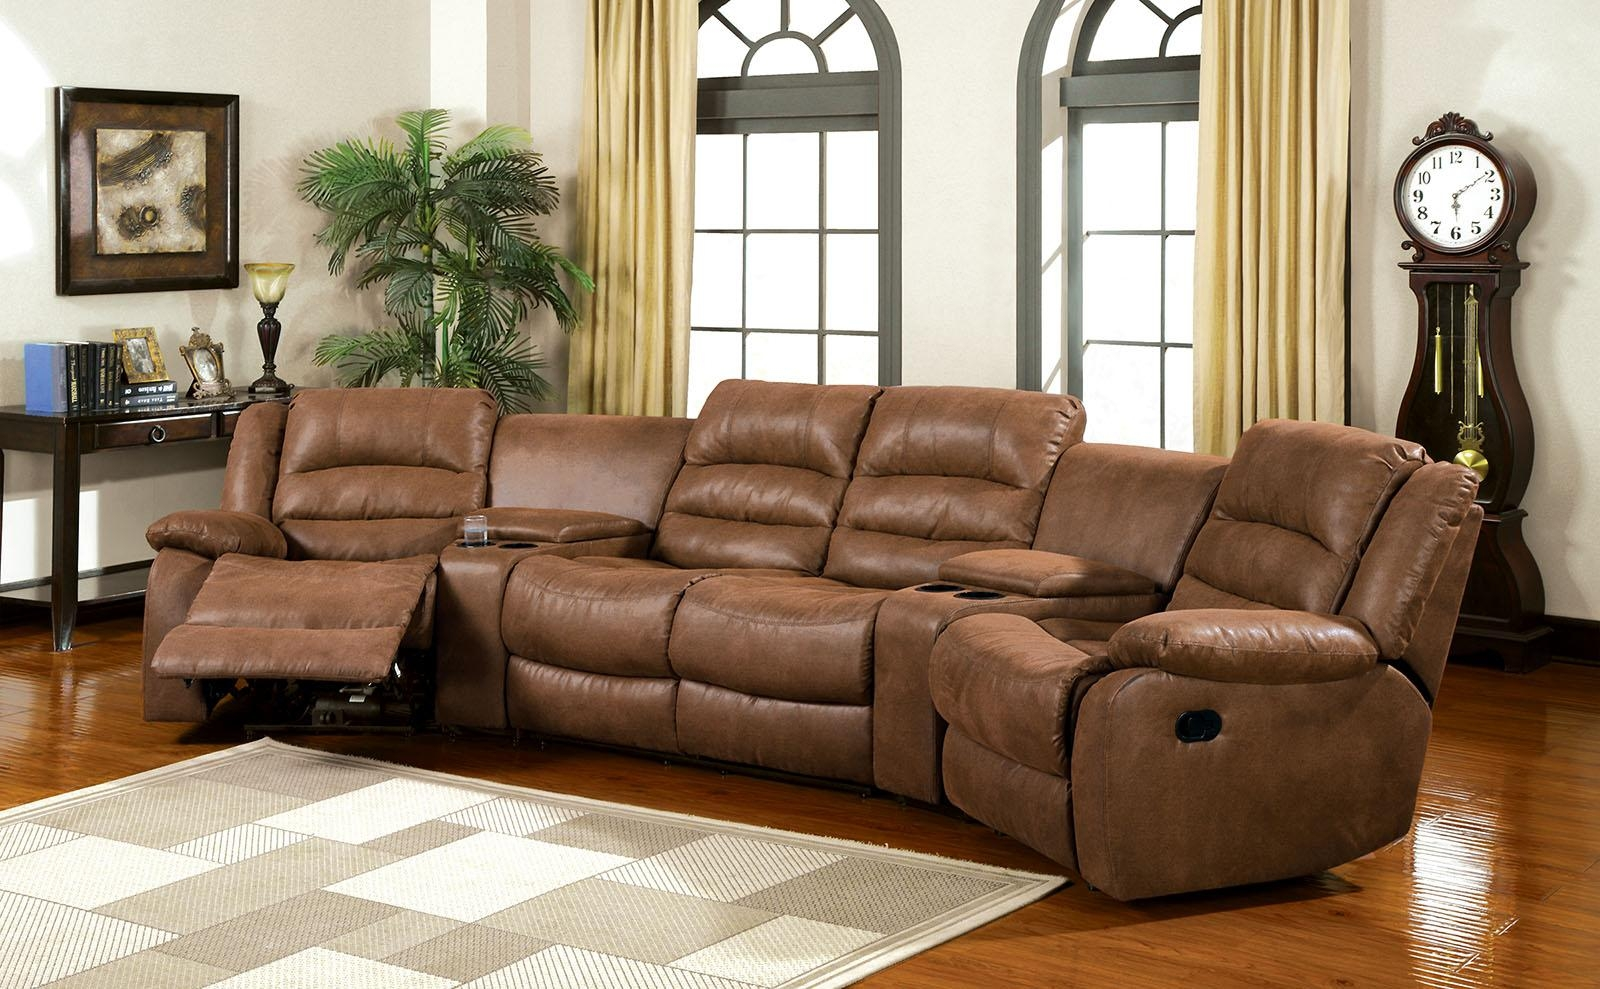 Furniture Of America Cm6123 Manchester Brown Leather Like Fabric 2 Inside Theatre Sectional Sofas (View 7 of 20)